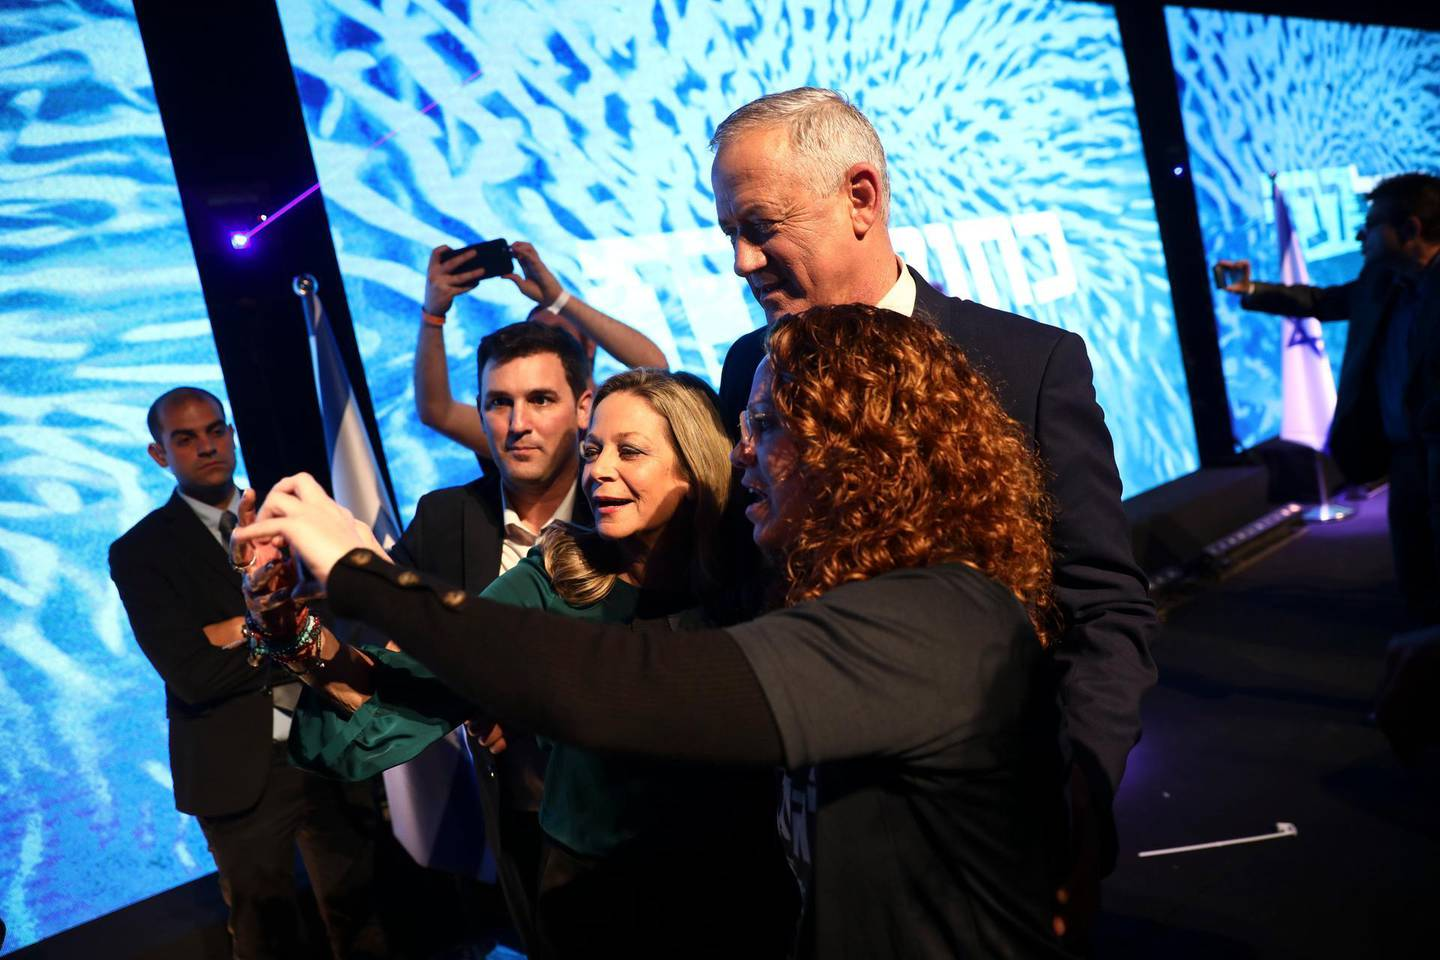 Blue and White party leader Benny Gantz with supporters during election campaign rally in Tel Aviv, Israel, Saturday, Feb. 29, 2020. (AP Photo/Oded Balilty)